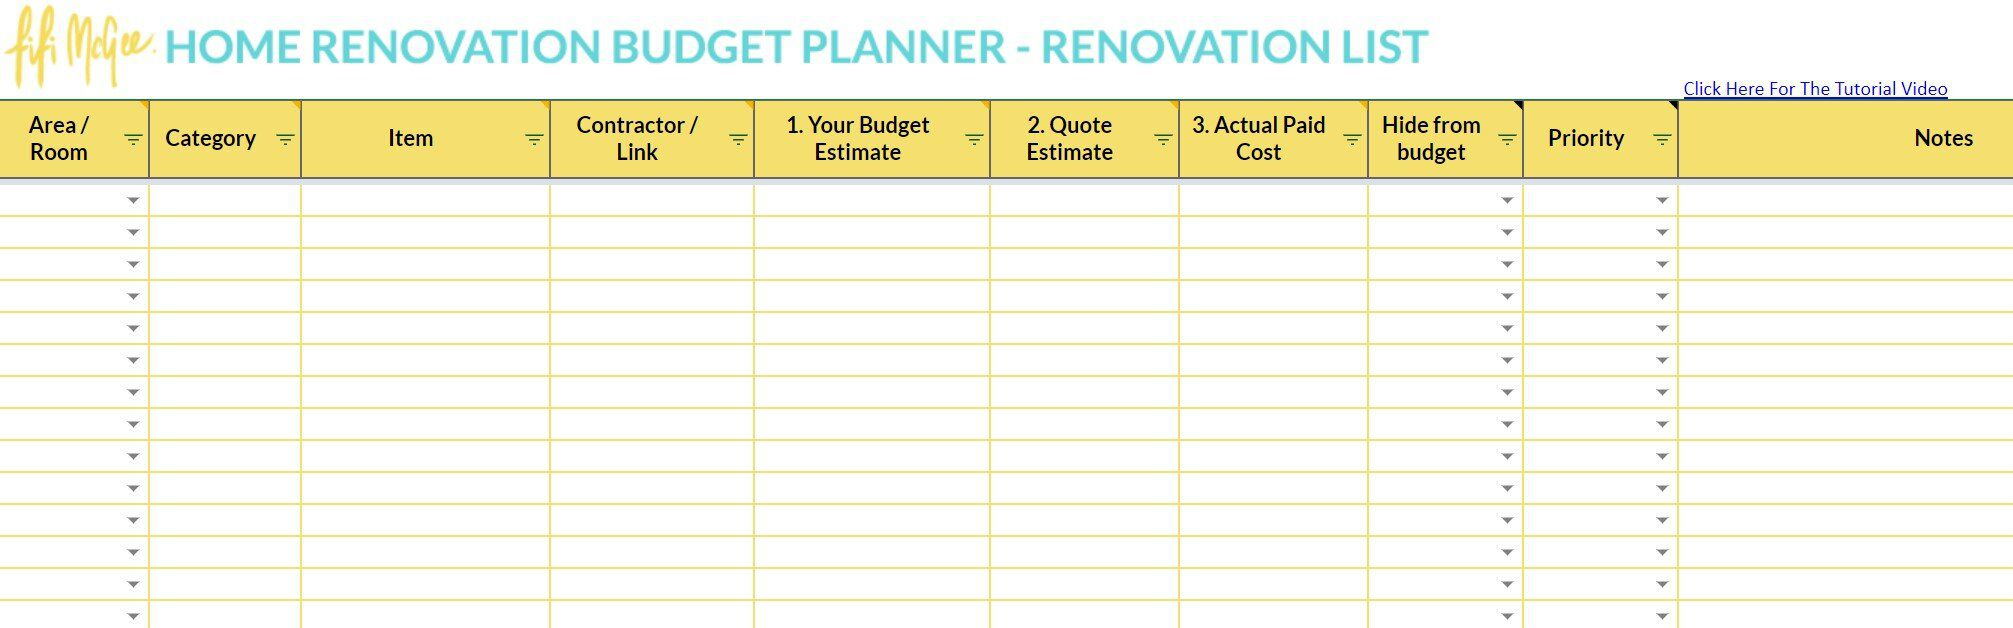 003 Wonderful Best Home Renovation Budget Template Excel Free Photo Full